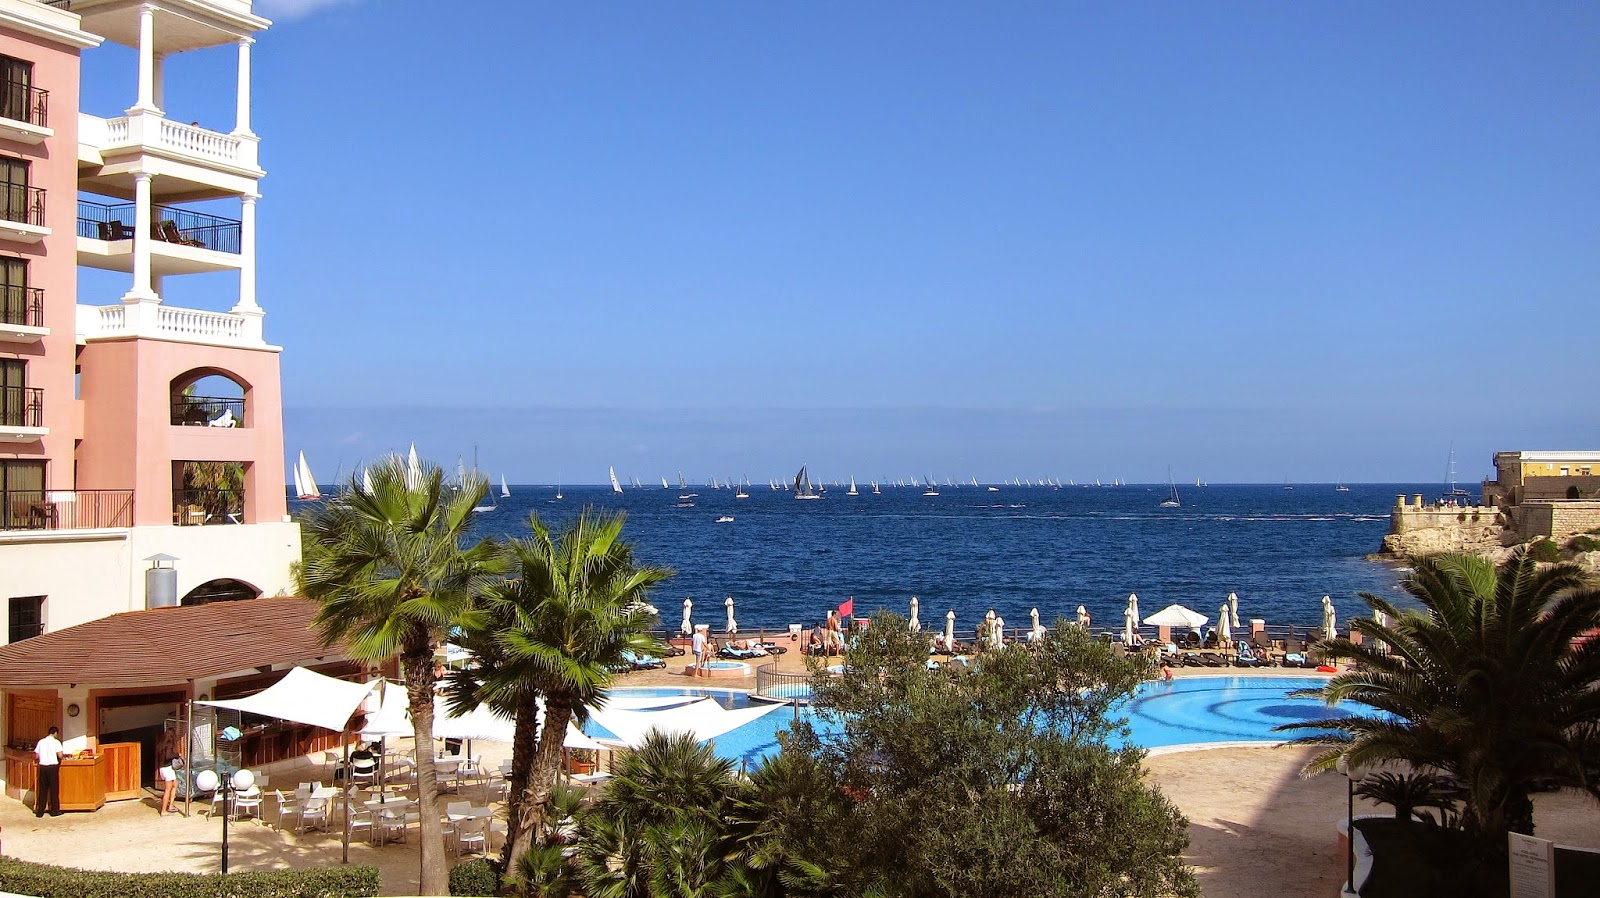 Rolex Middle Sea Race, Westin Dragonara Resort, St. Julian's, Malta